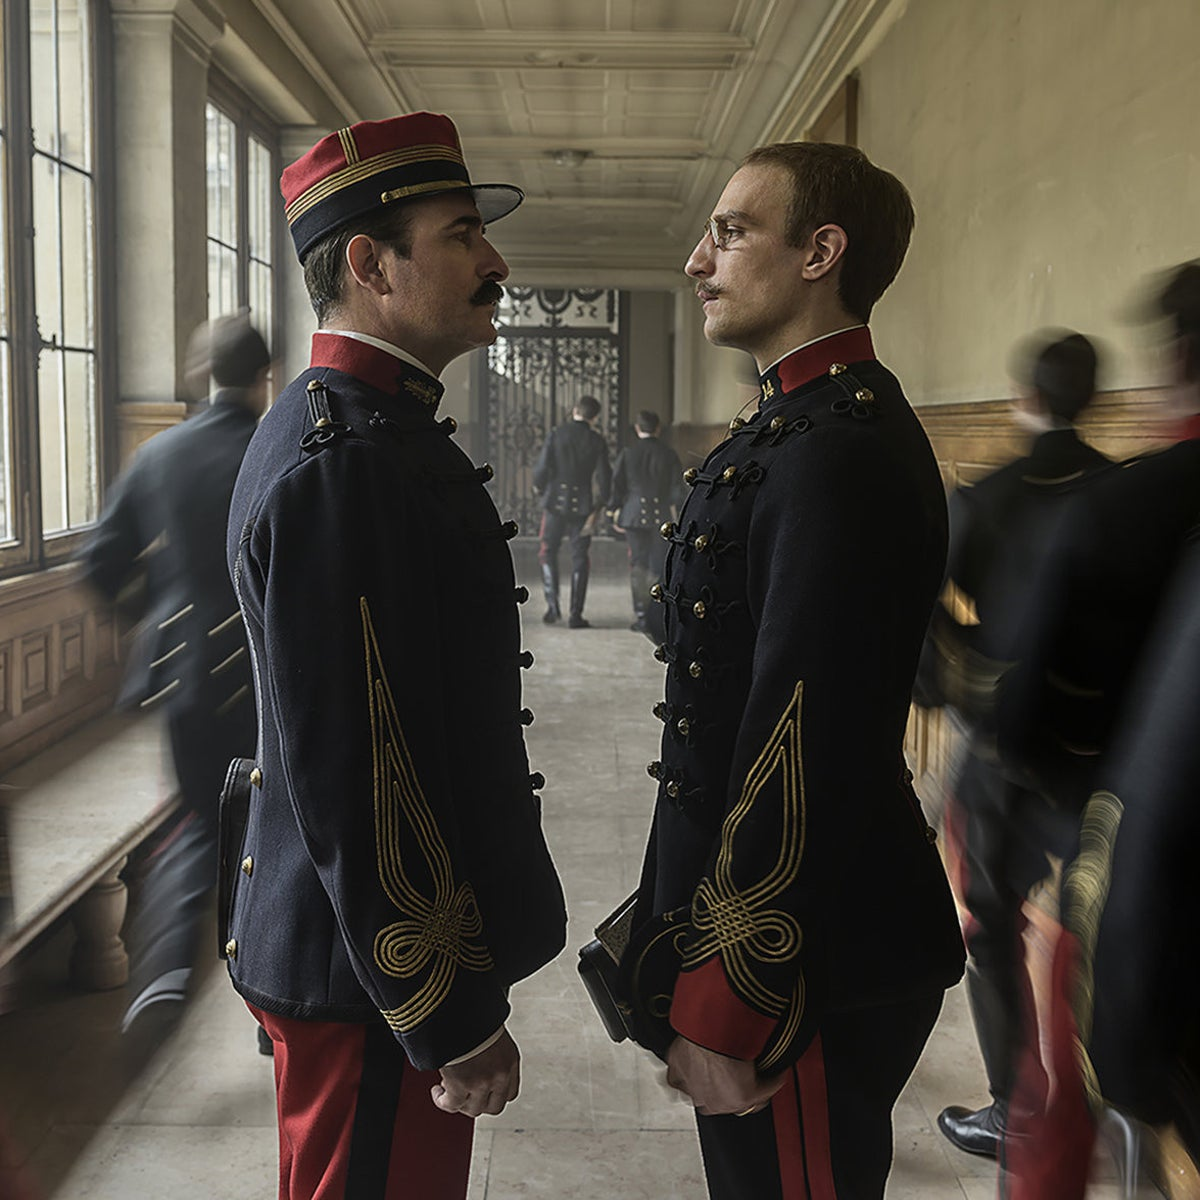 """Jean Dujardin (as Picquart) and Louis Garrel (Dreyfus) in a still from """"An Officer and a Spy."""""""